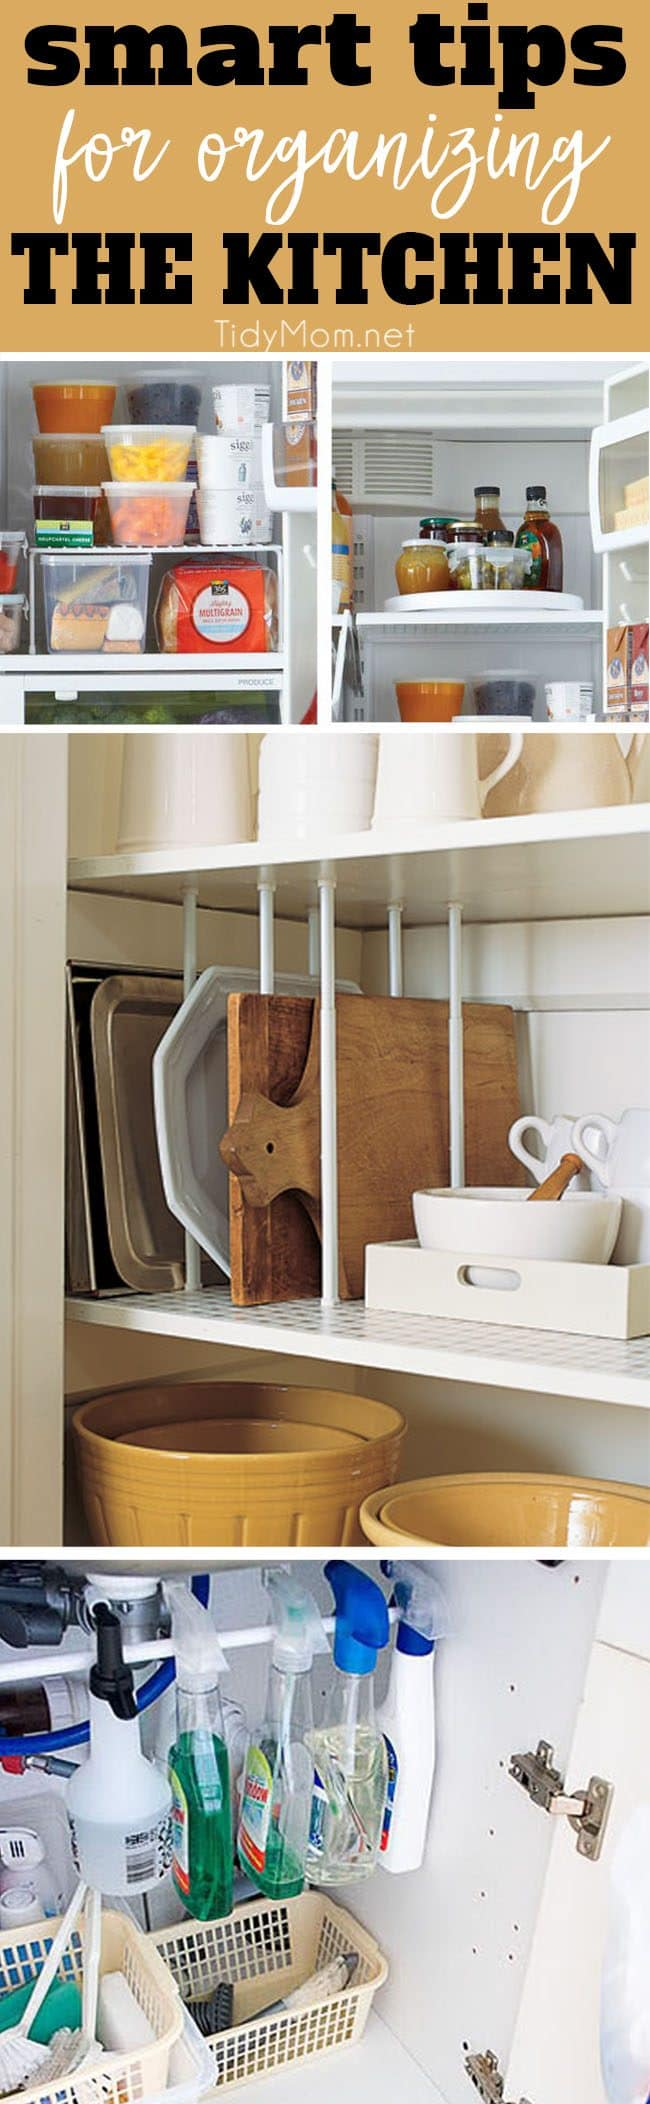 For The Kitchen 8 Smart Organizing Tips For The Kitchen